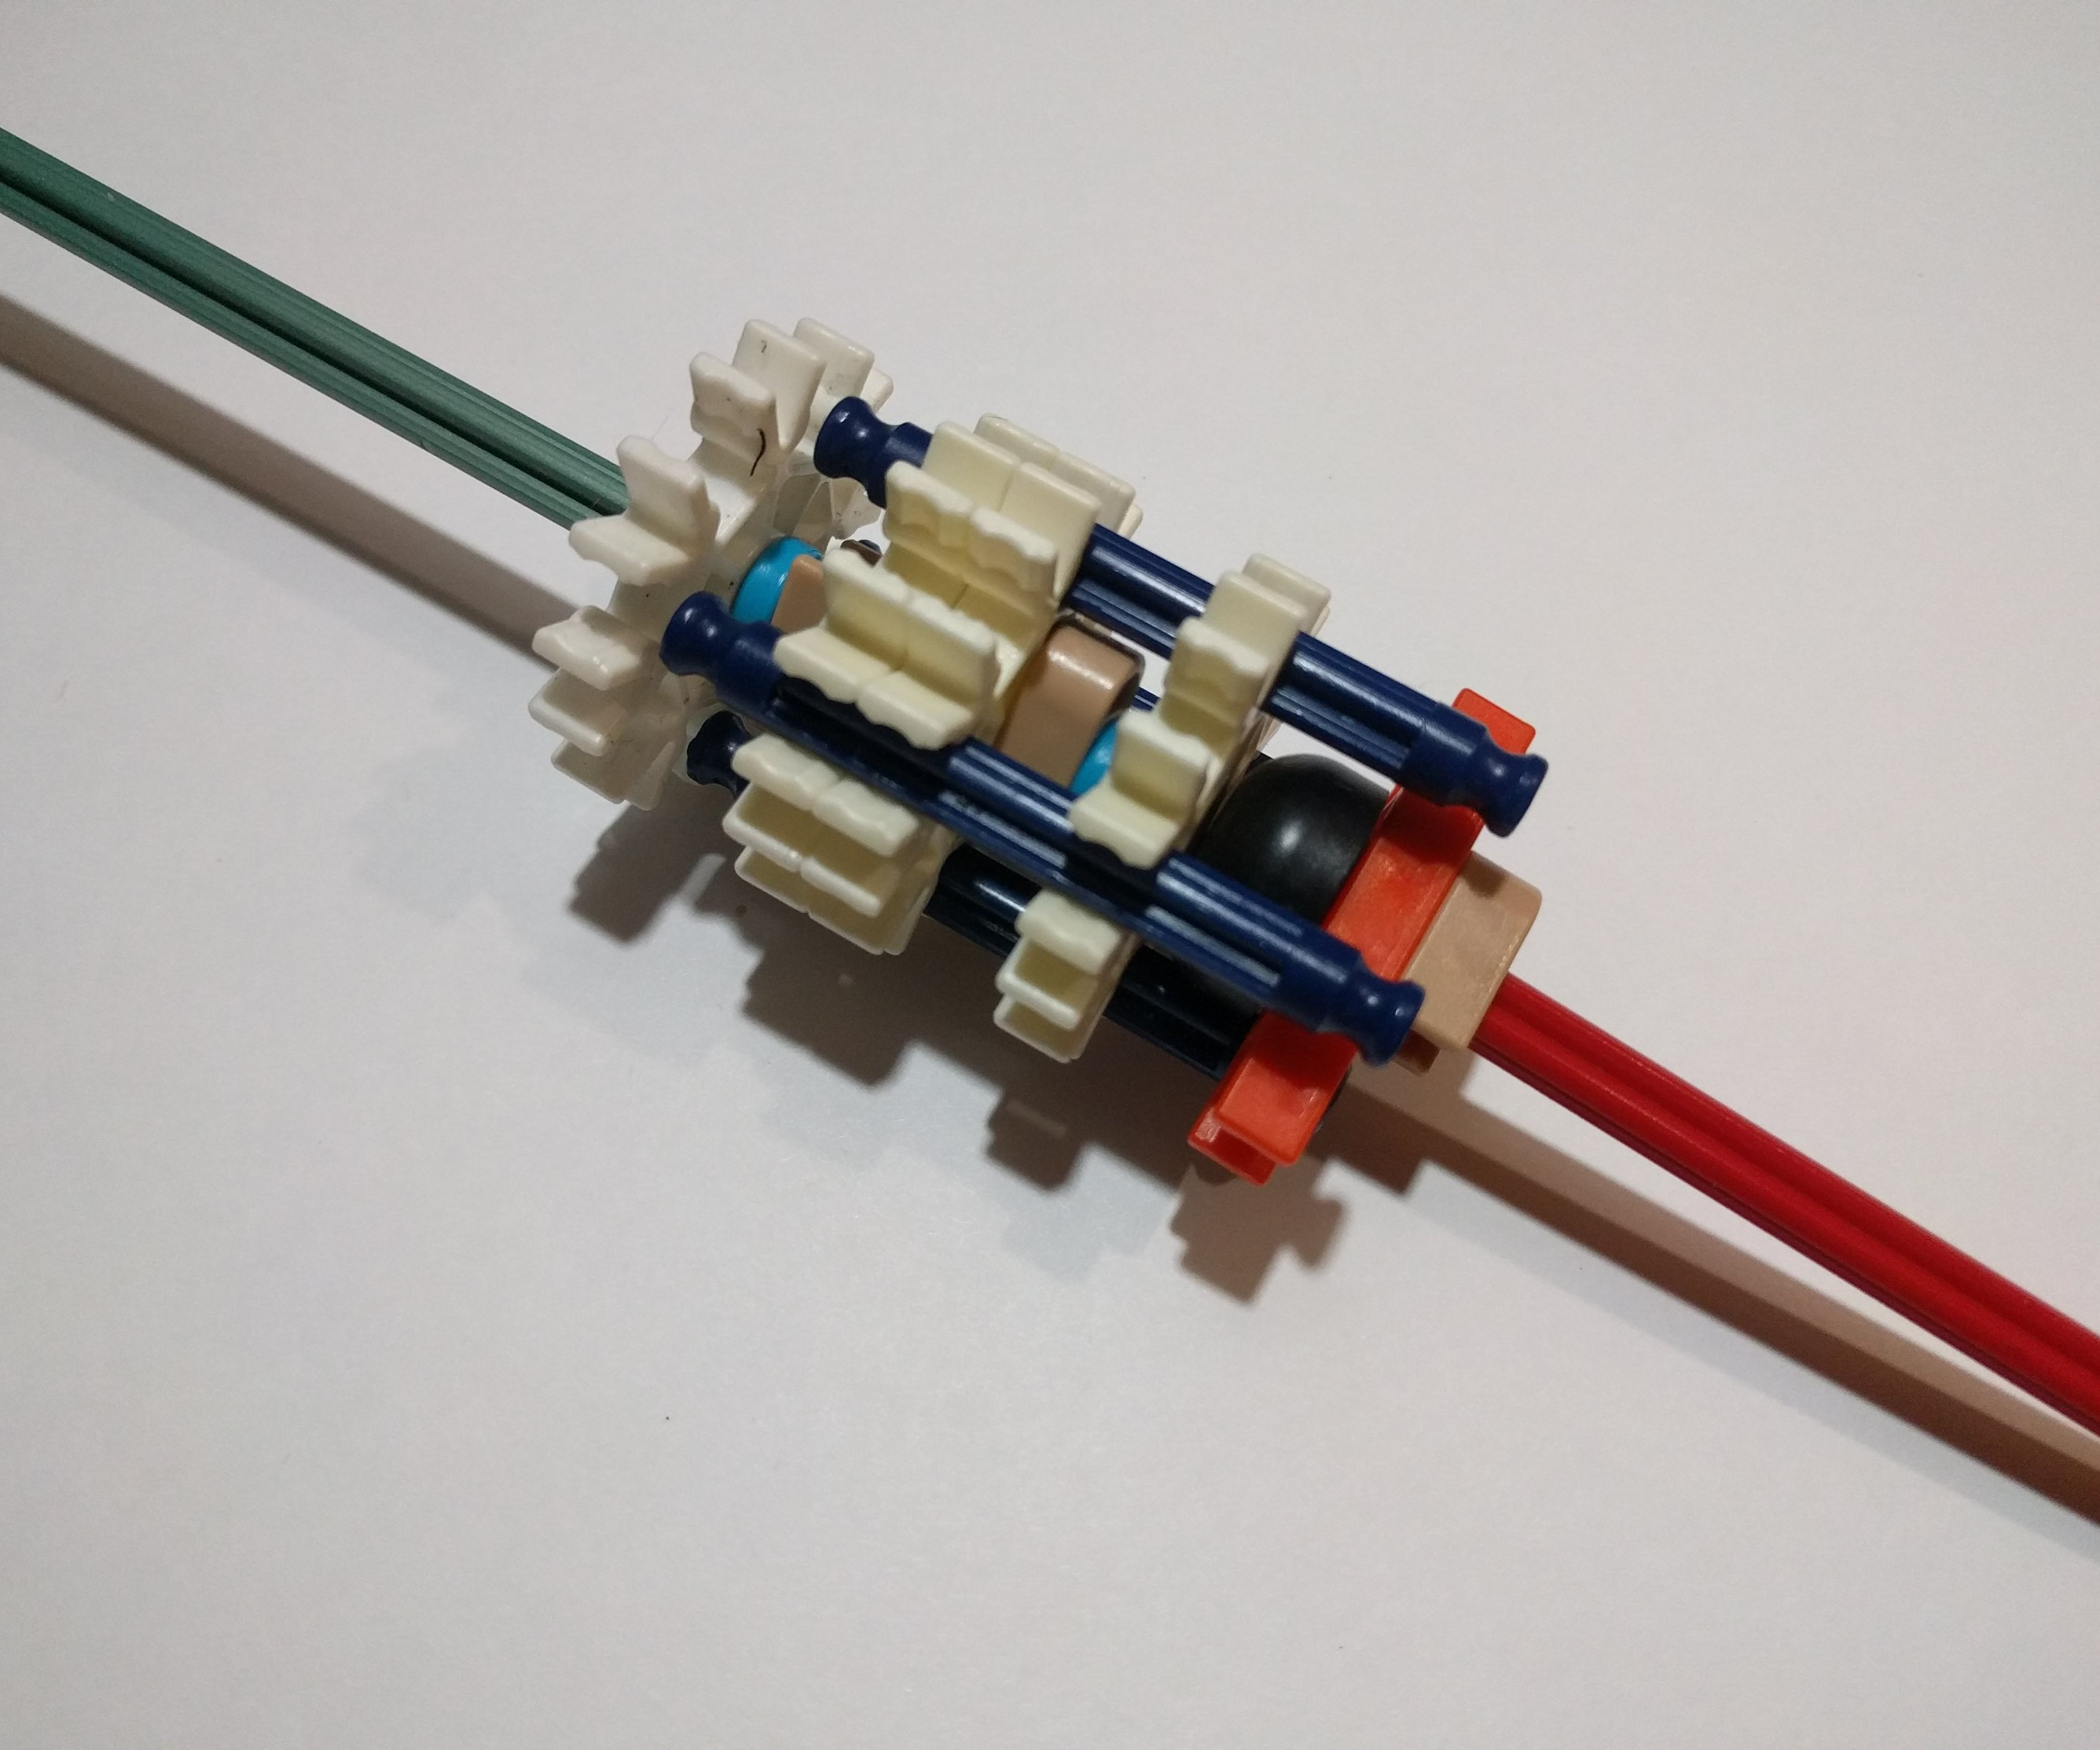 Knex CV Joint